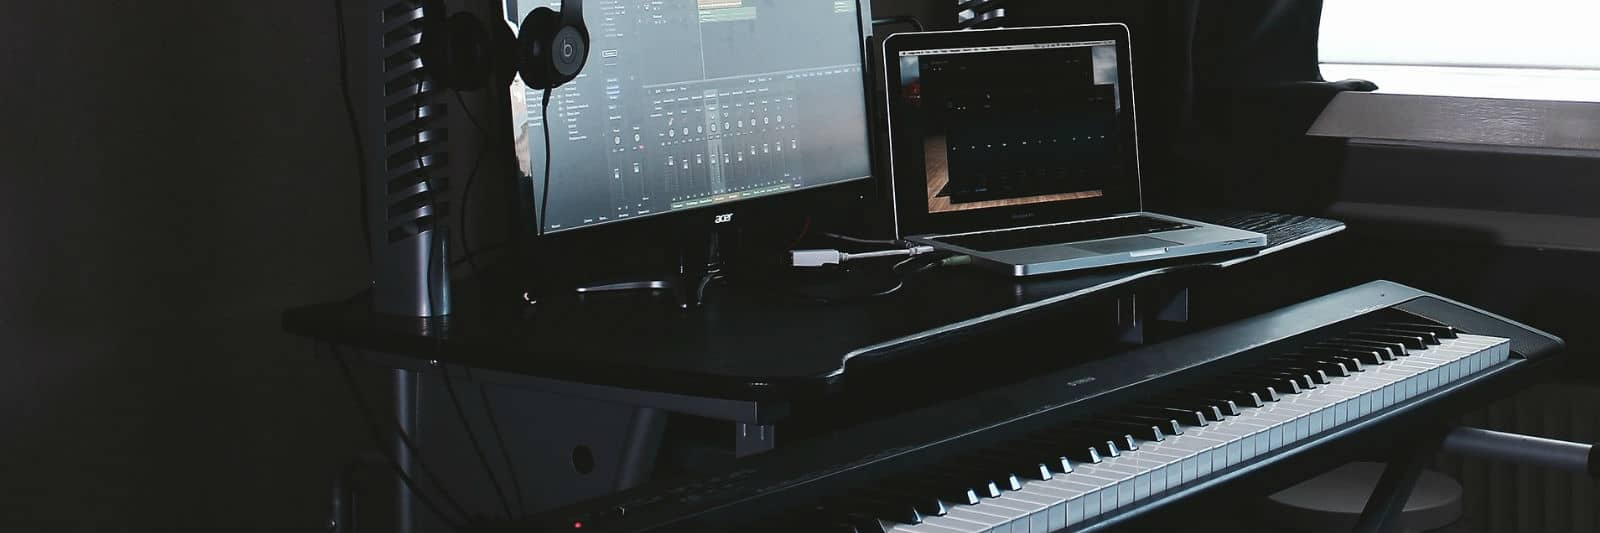 Garageband Na Pc How To Record The Sound Of Your Keyboard On Your Pc Mac Laptop